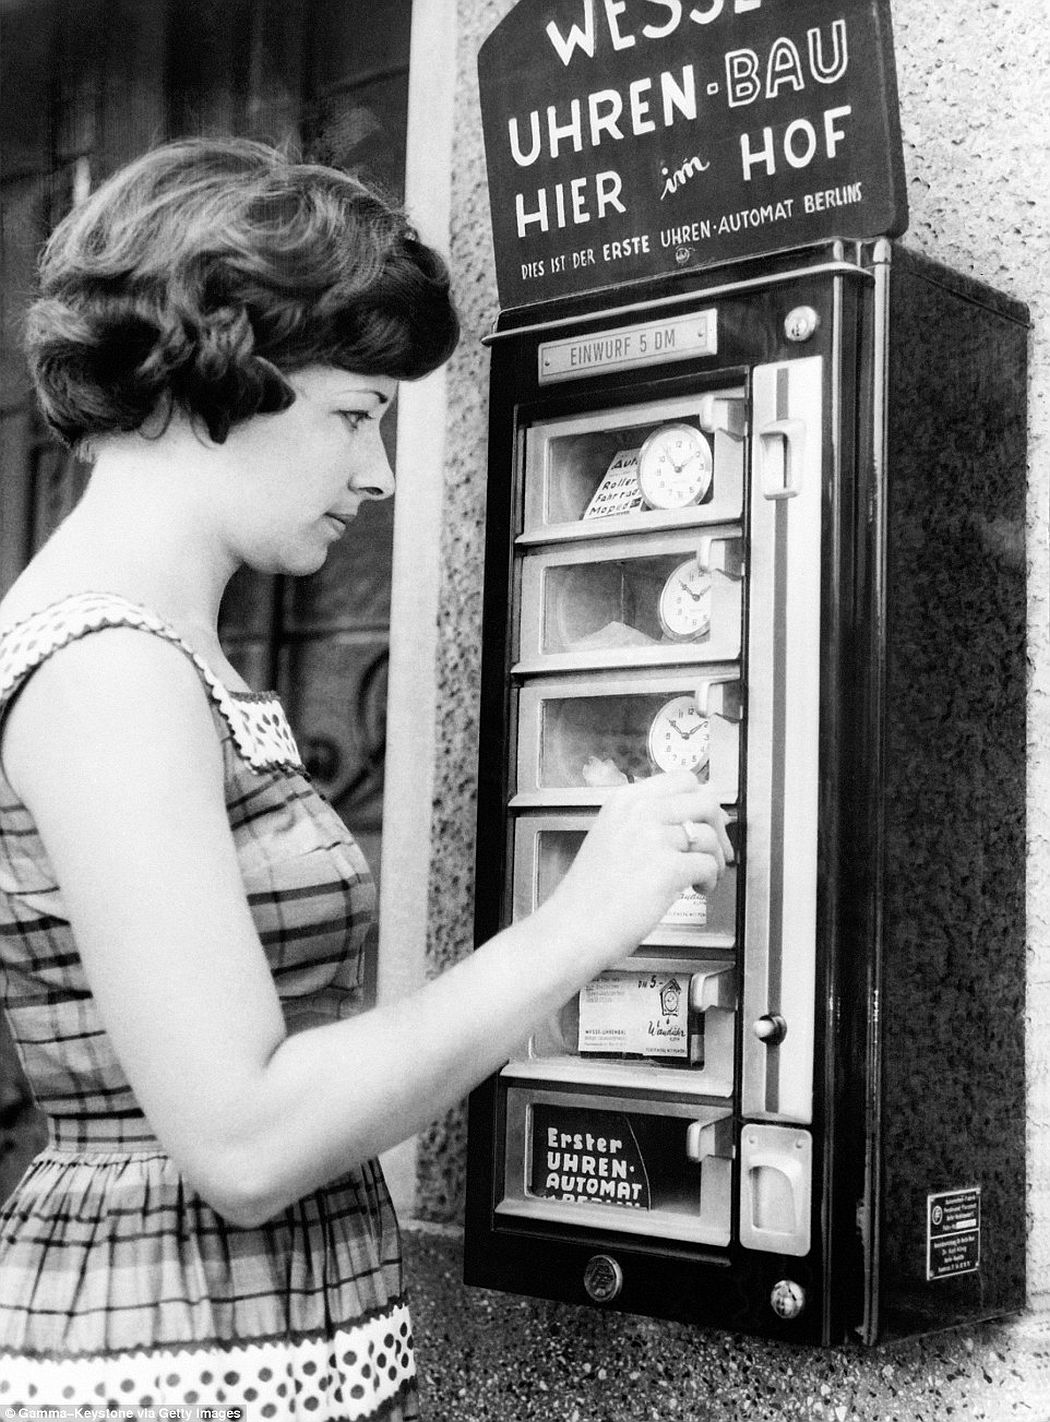 A woman in Berlin, Germany uses a coin-operated device to buy a clock, ca. 1960s.